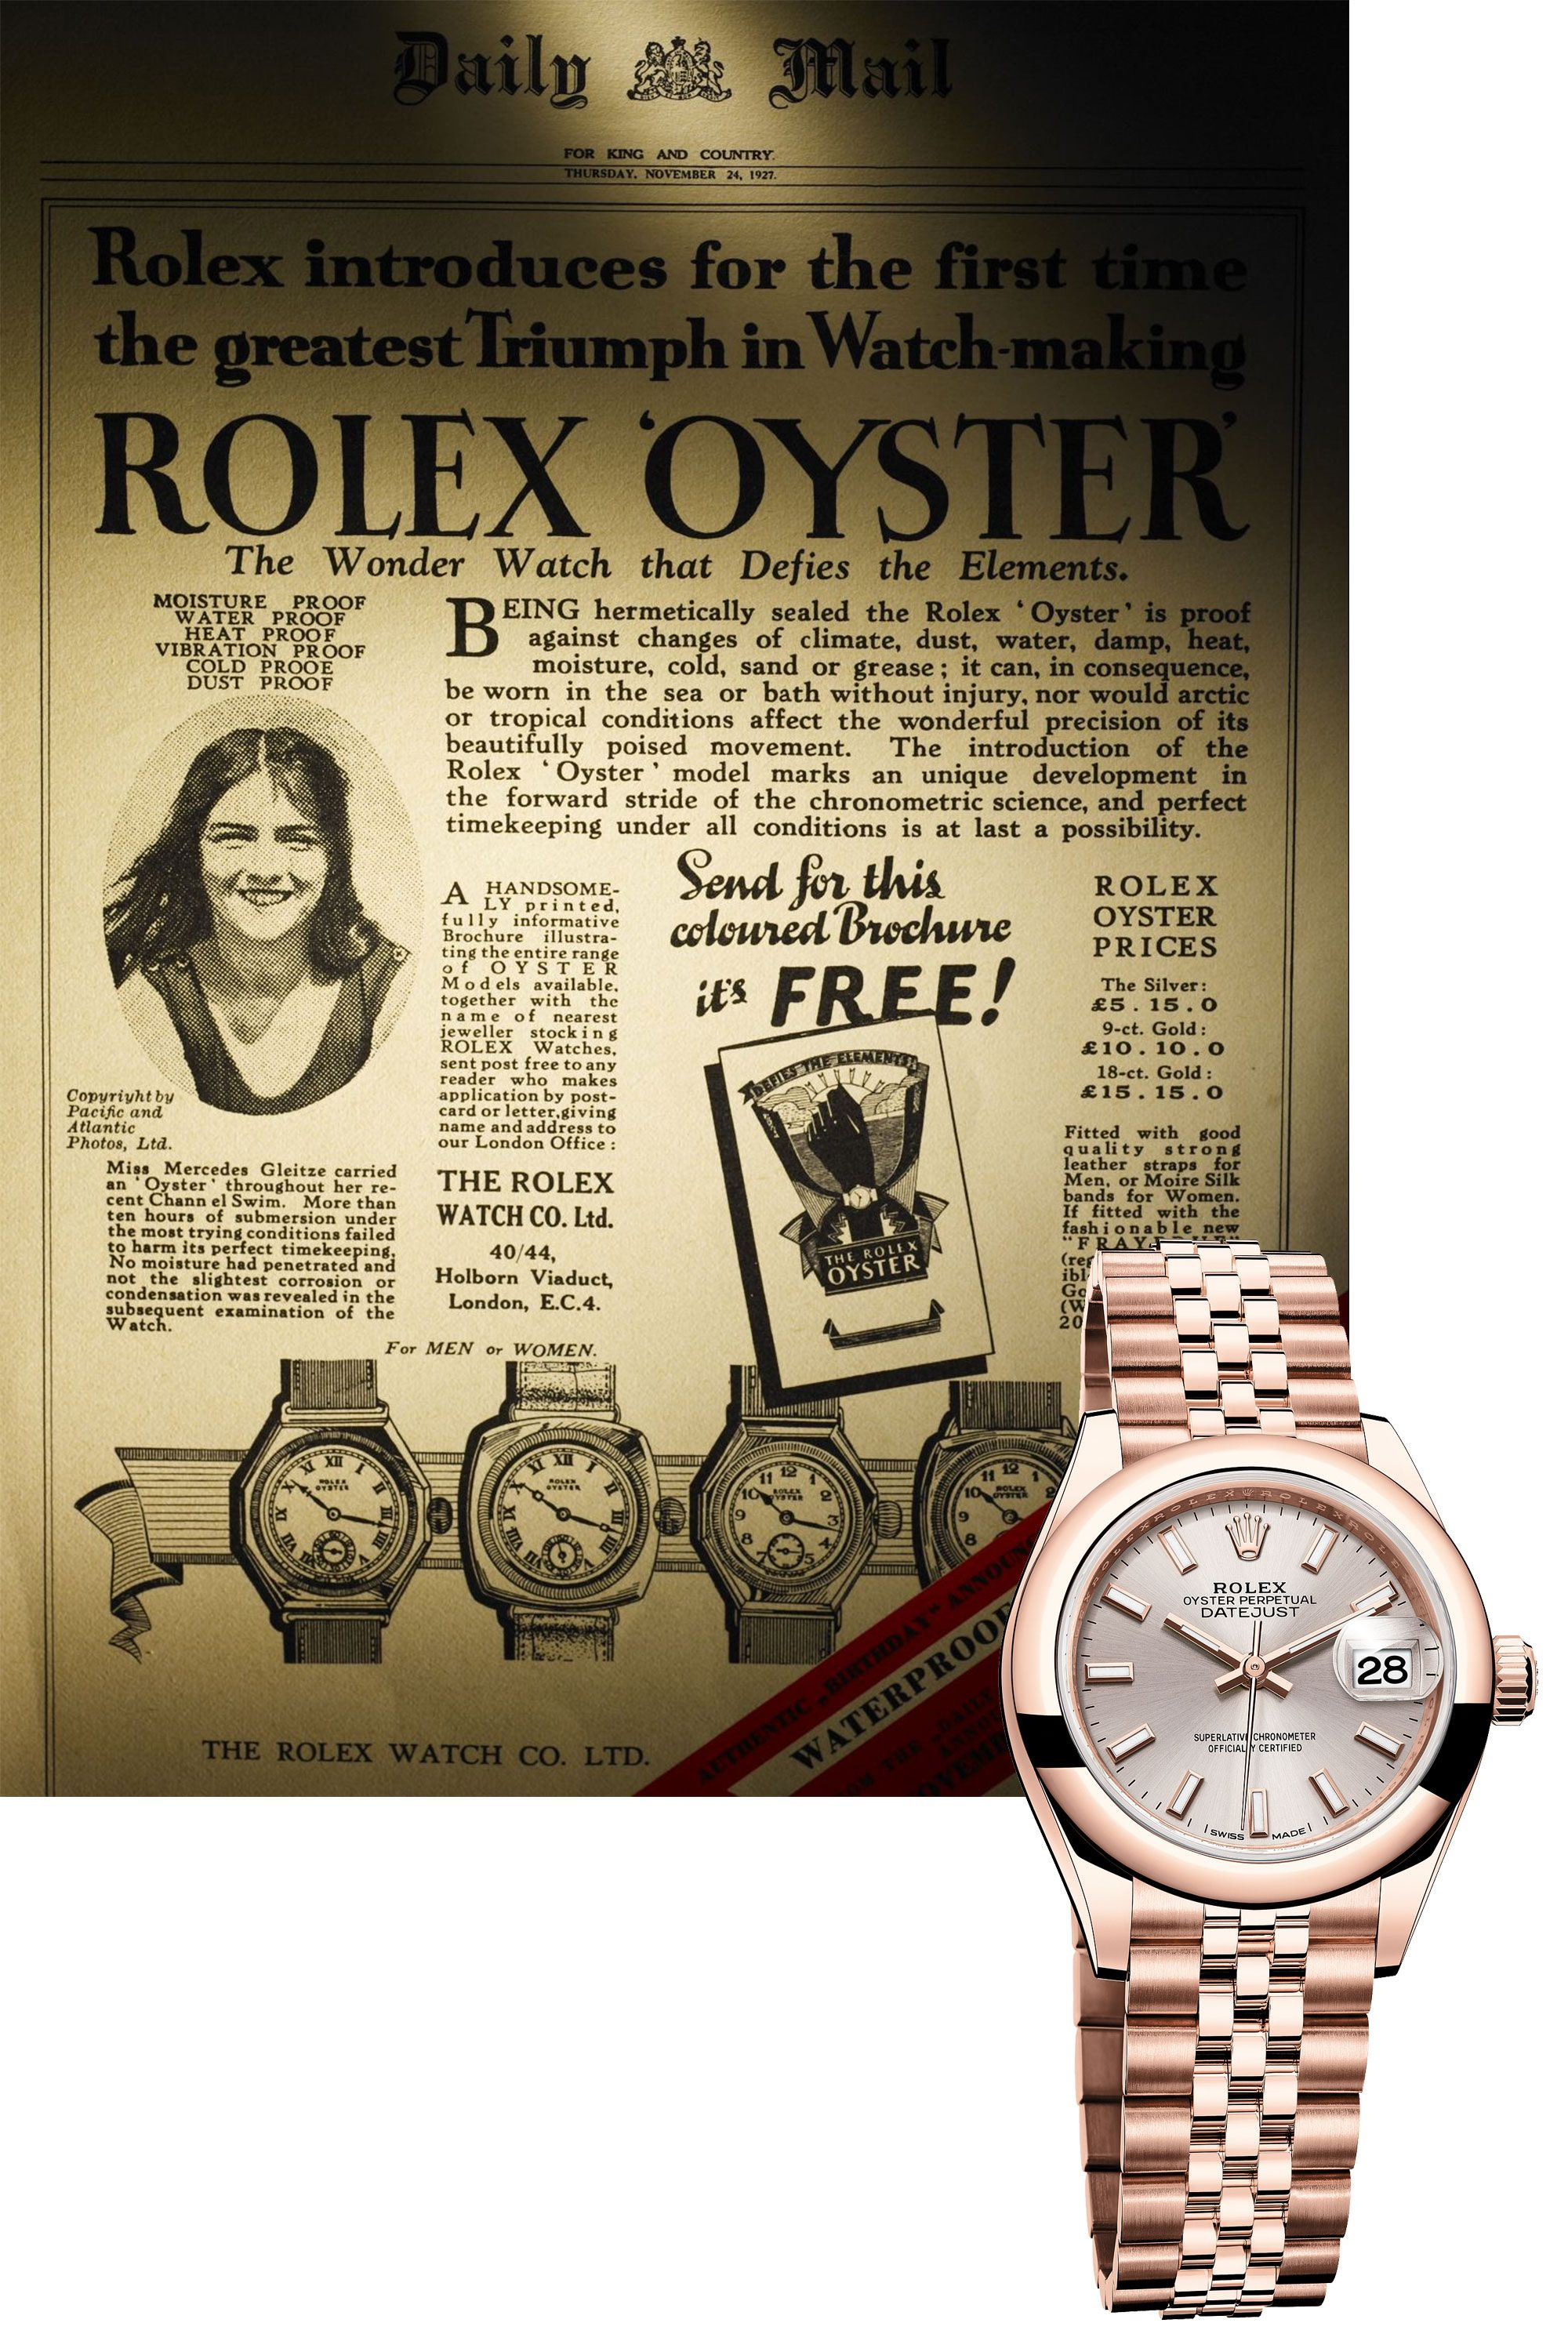 "<p>English Channel swimmer Mercedes Gleitze gave the water-resistant Rolex Oyster instant street cred—in fact, she introduced the world to the idea of brand ambassadorship. Today's ladies Datejust retains much of the original's aesthetic, including the distinctive dial with hour markers made of 18K gold (the current covetable version is available in Everose pink gold).</p><p><em data-redactor-tag=""em"" data-verified=""redactor"">Lady Datejust 28 in Everose, $25,650; </em><a href=""https://www.rolex.com/watches/datejust/m279165-0003.html"" target=""_blank"" data-tracking-id=""recirc-text-link""><em data-redactor-tag=""em"" data-verified=""redactor"">rolex.com</em></a></p>"